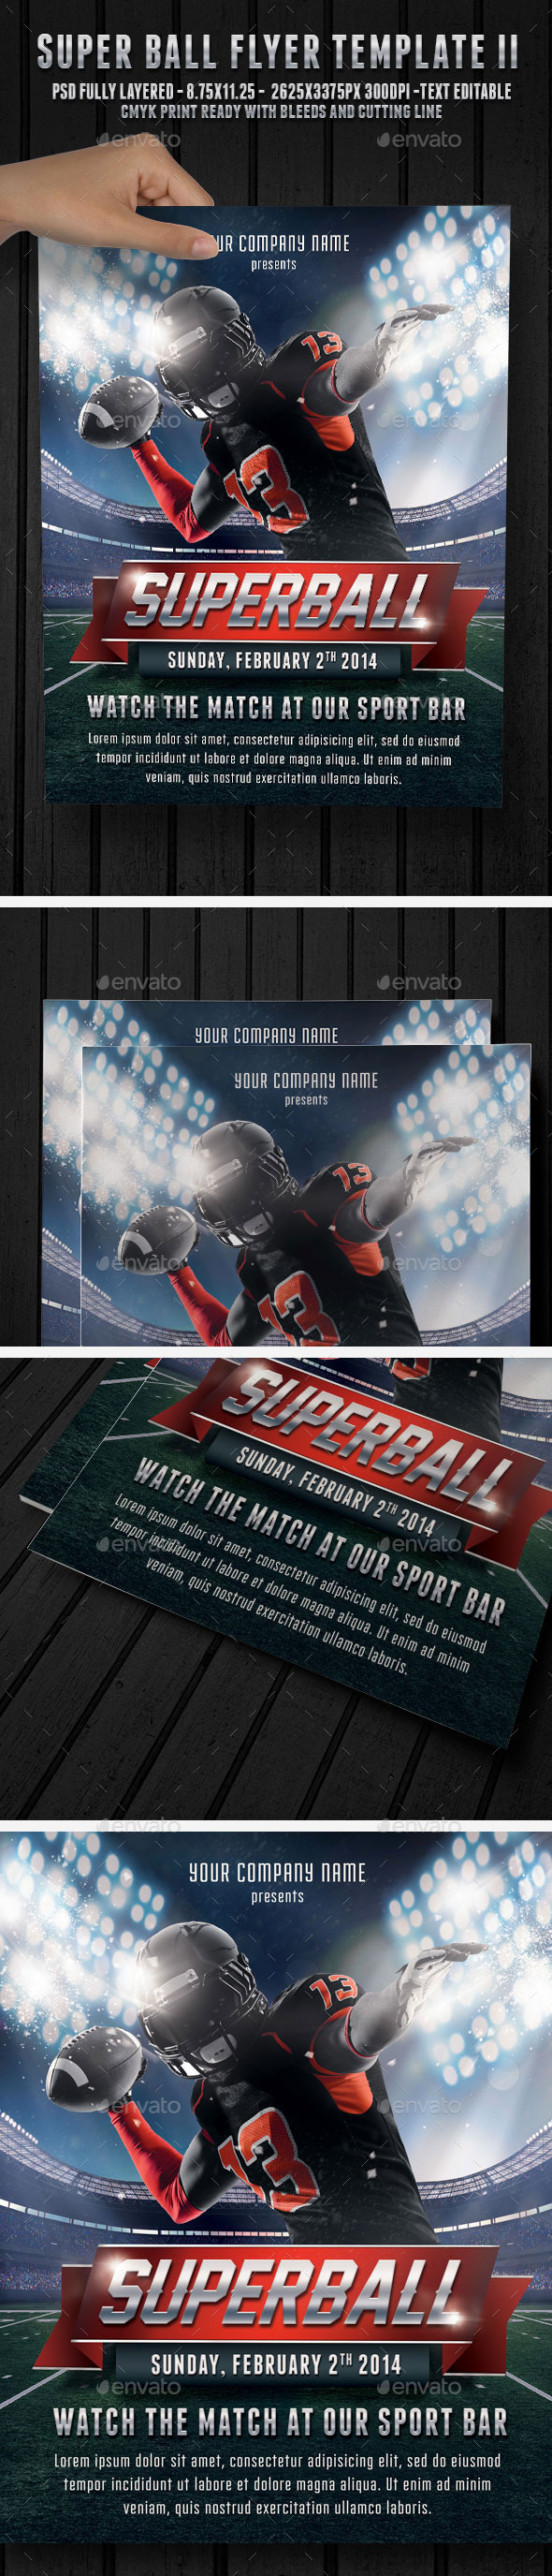 Super Ball Football 2 - Flyer Template - Sports Events